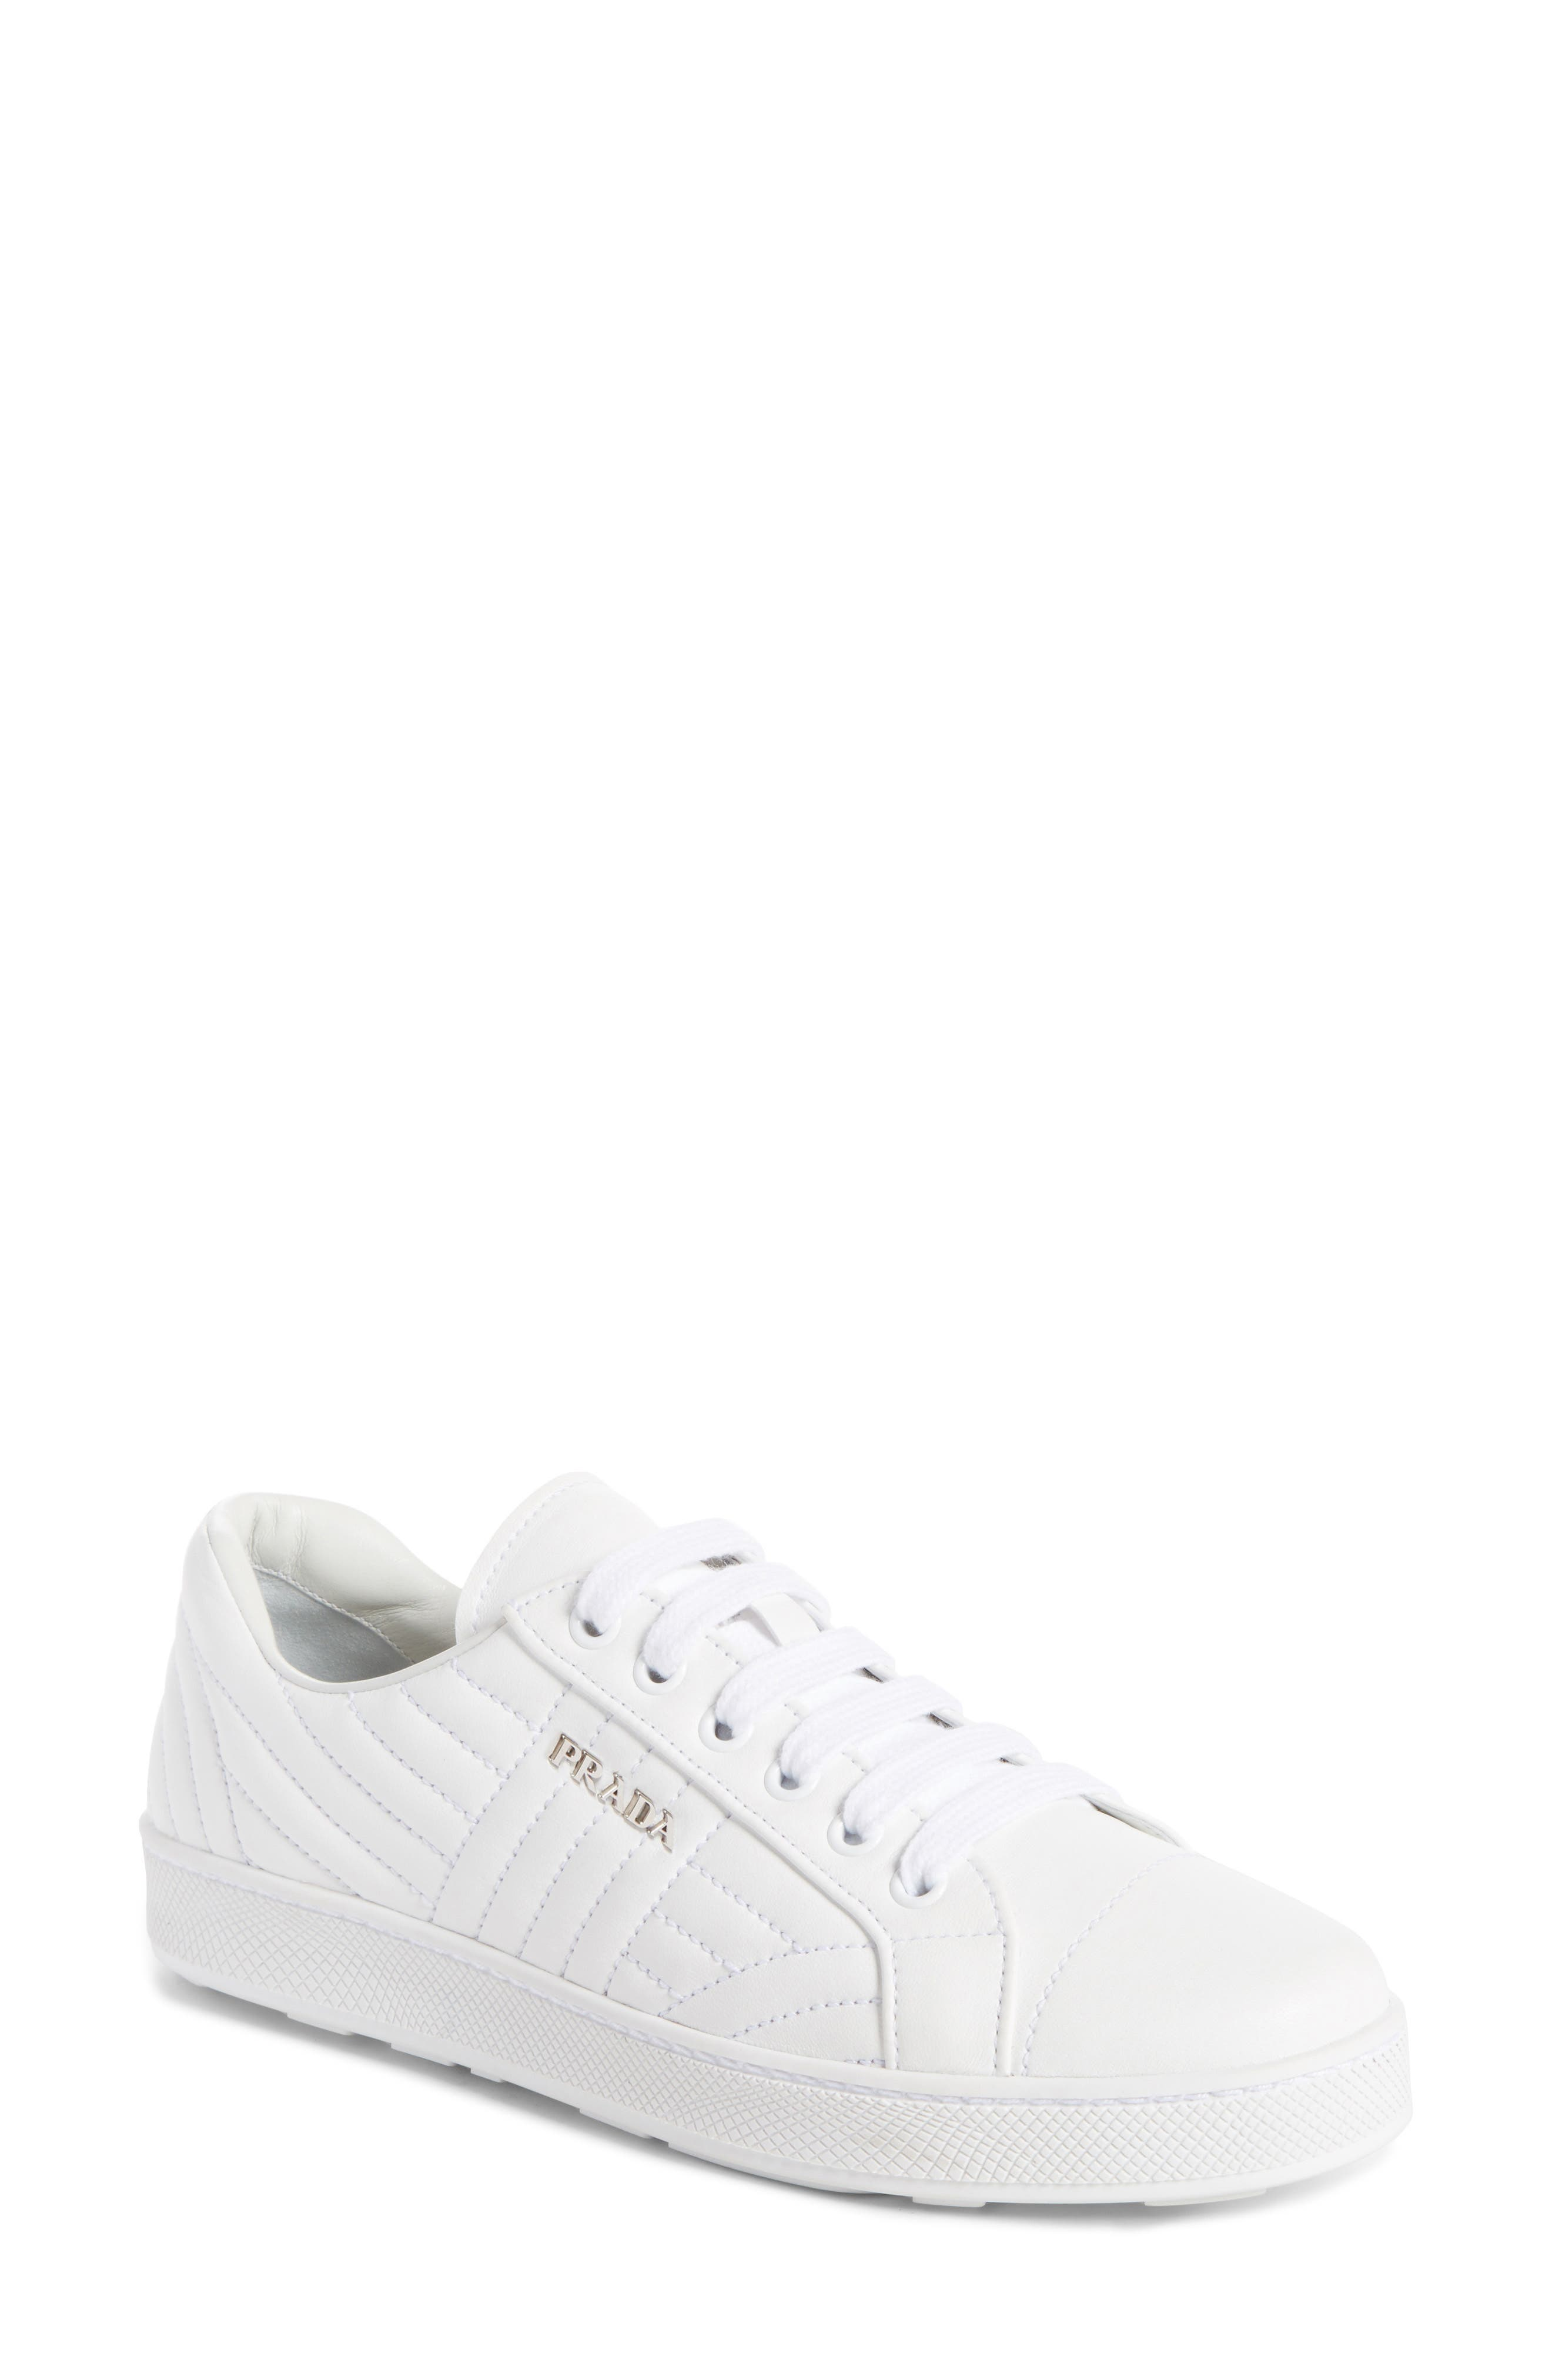 Main Image - Prada Quilted Leather Sneaker (Women)